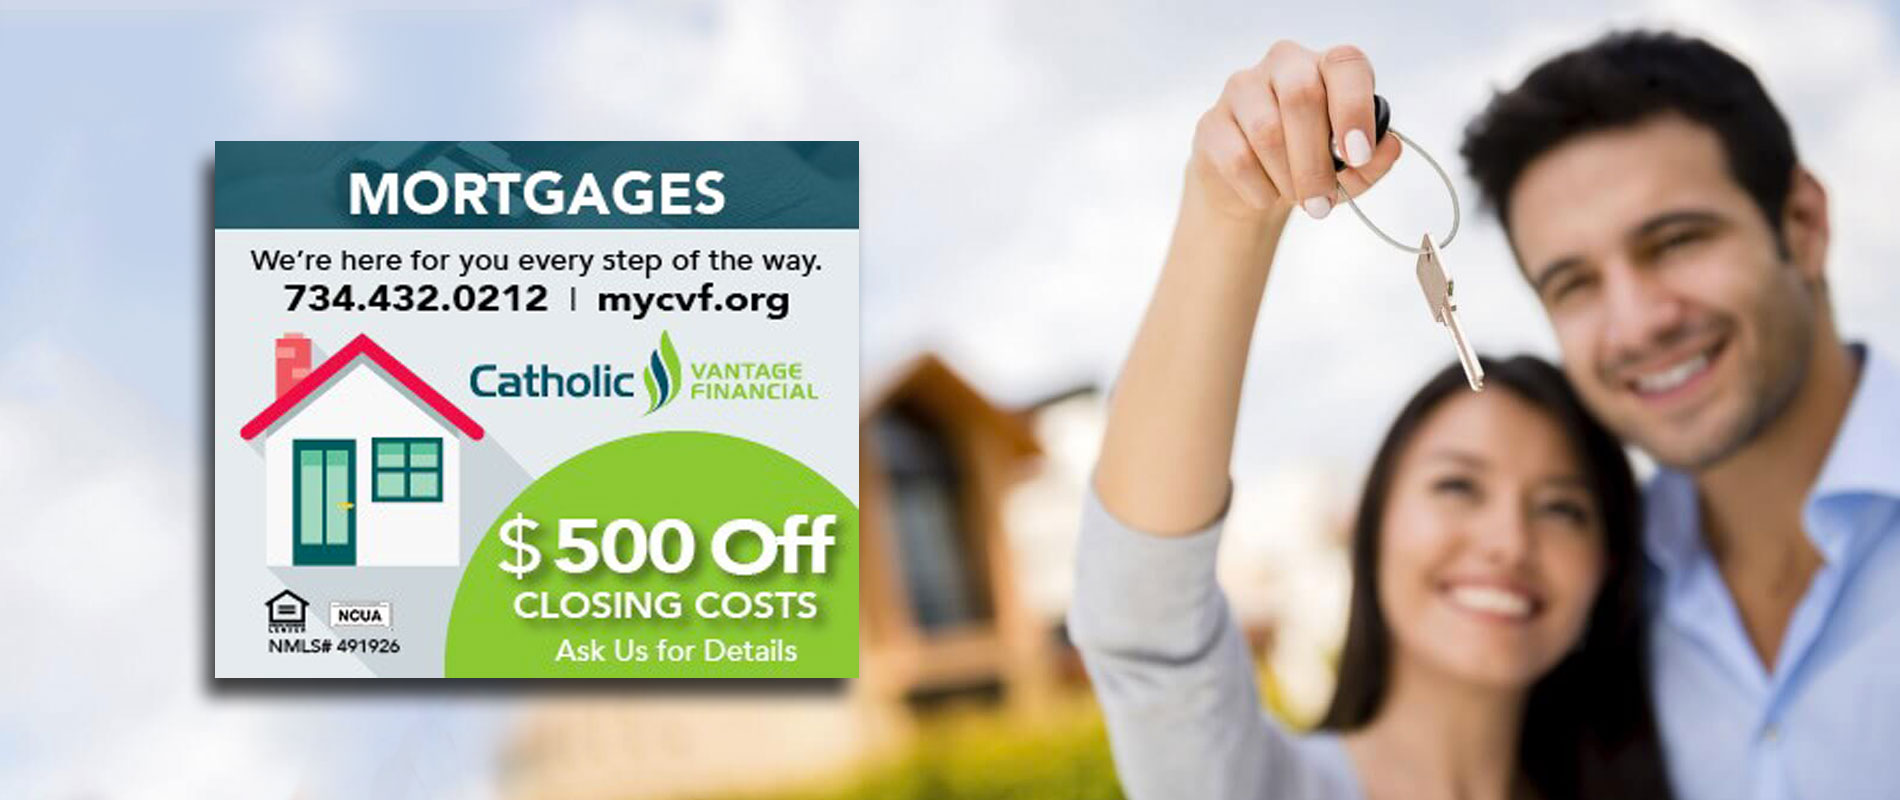 $500 off closing costs